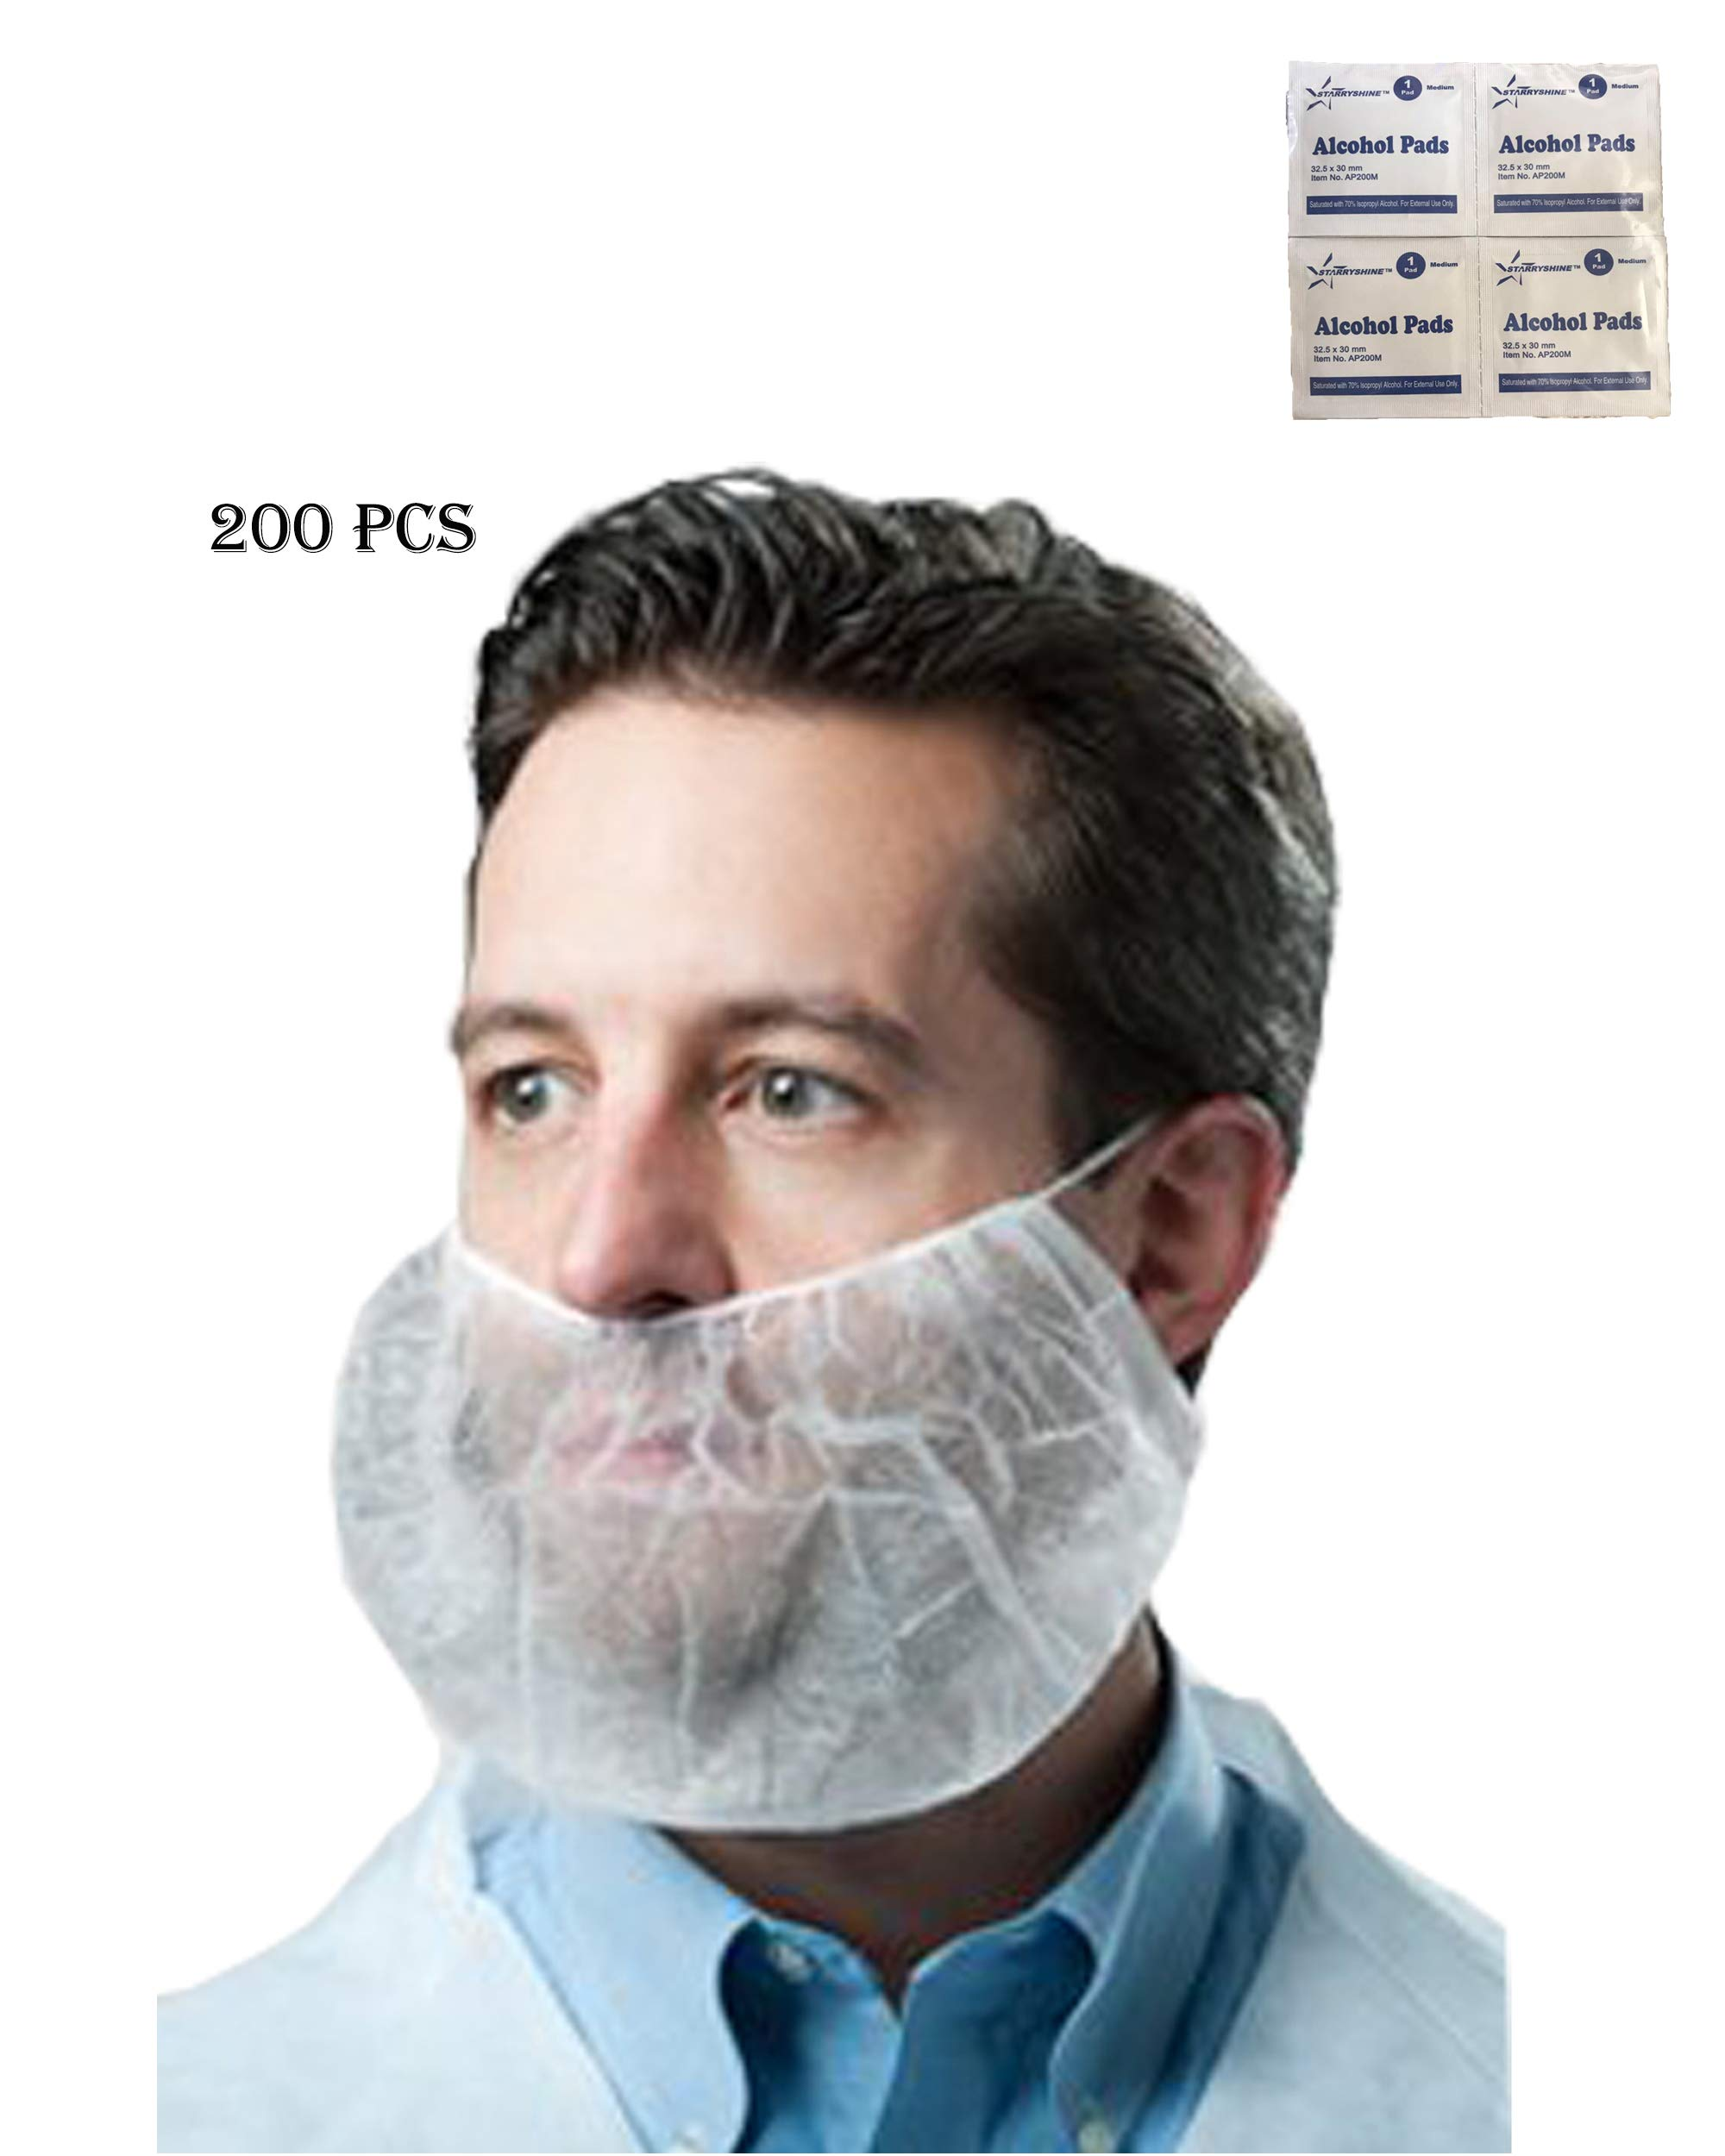 Economical Disposable Bouffant Beard Cover/ Protector, Beard Nets (Non-Woven, Latex-Free)-- Food Industry, Restaurants, Cooking, Healthcare Facilities and More--Bonus Alcohol Pads Include by Starryshine and EZ-5